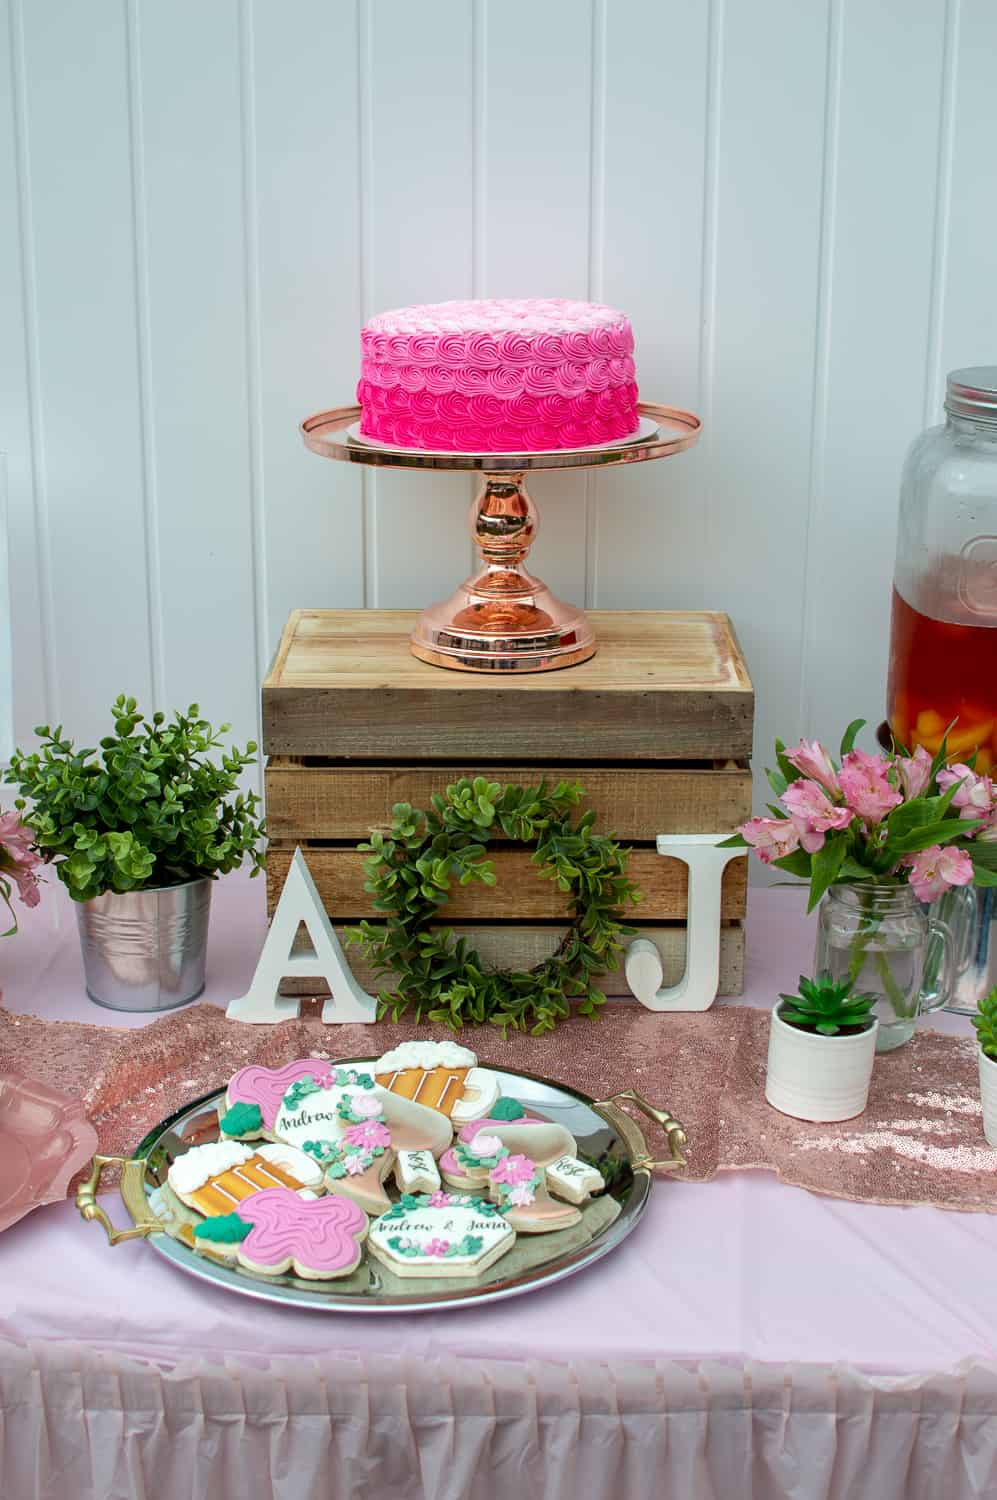 Pink rosette cake on Amalfi Decor cake stand and custom sugar cookies